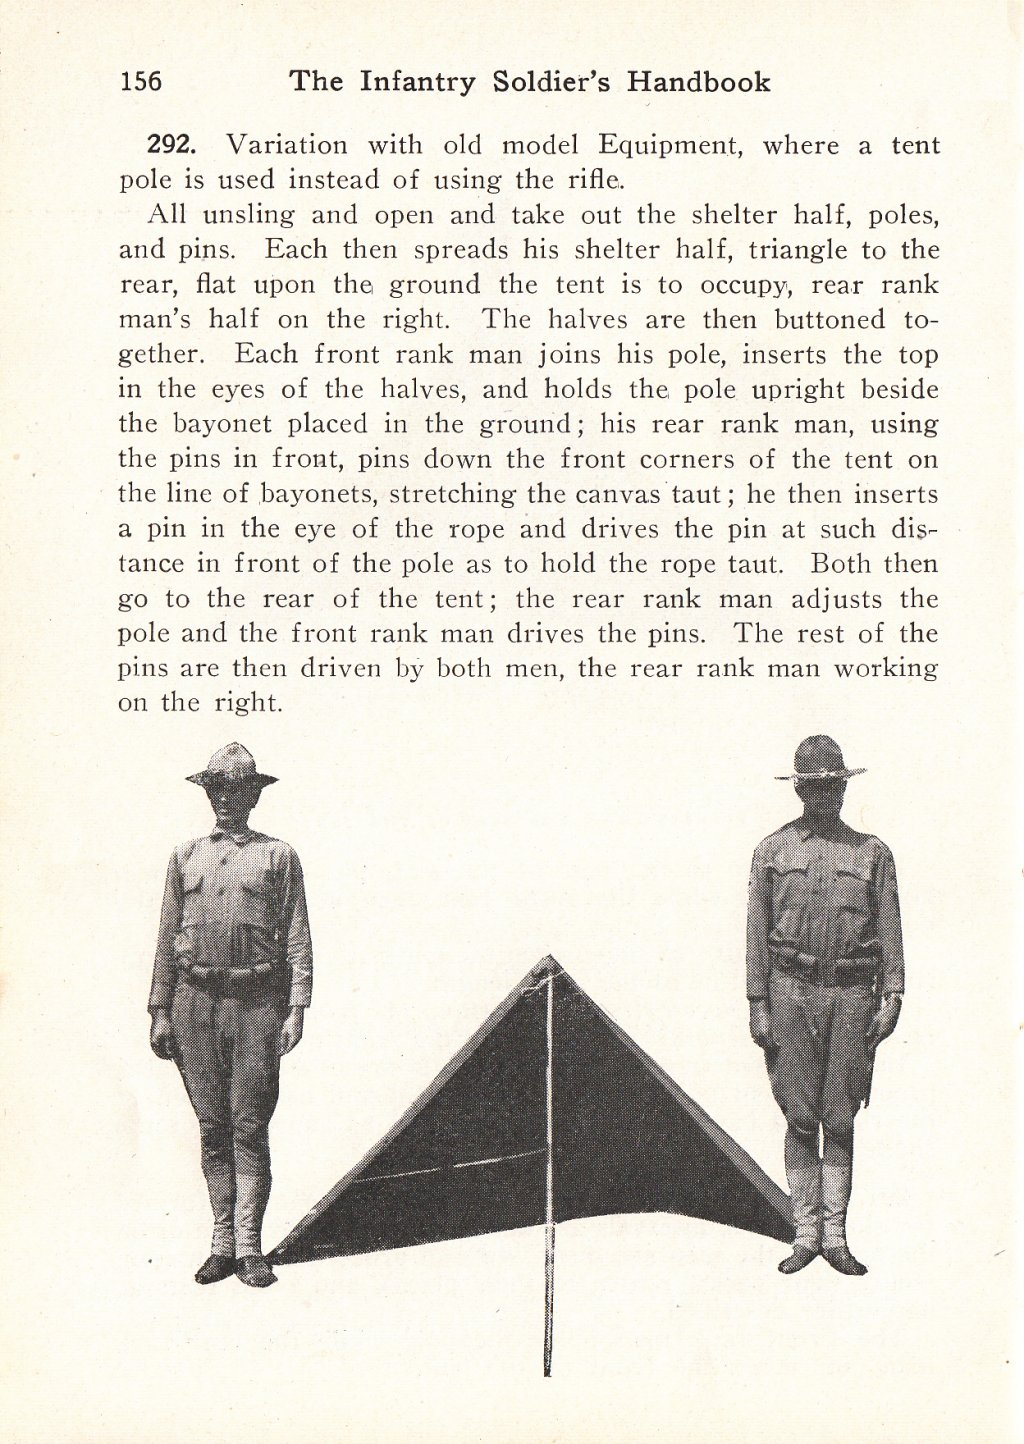 314th Infantry Regiment - Infantry Soldiers Handbook - Waldron - Page 156